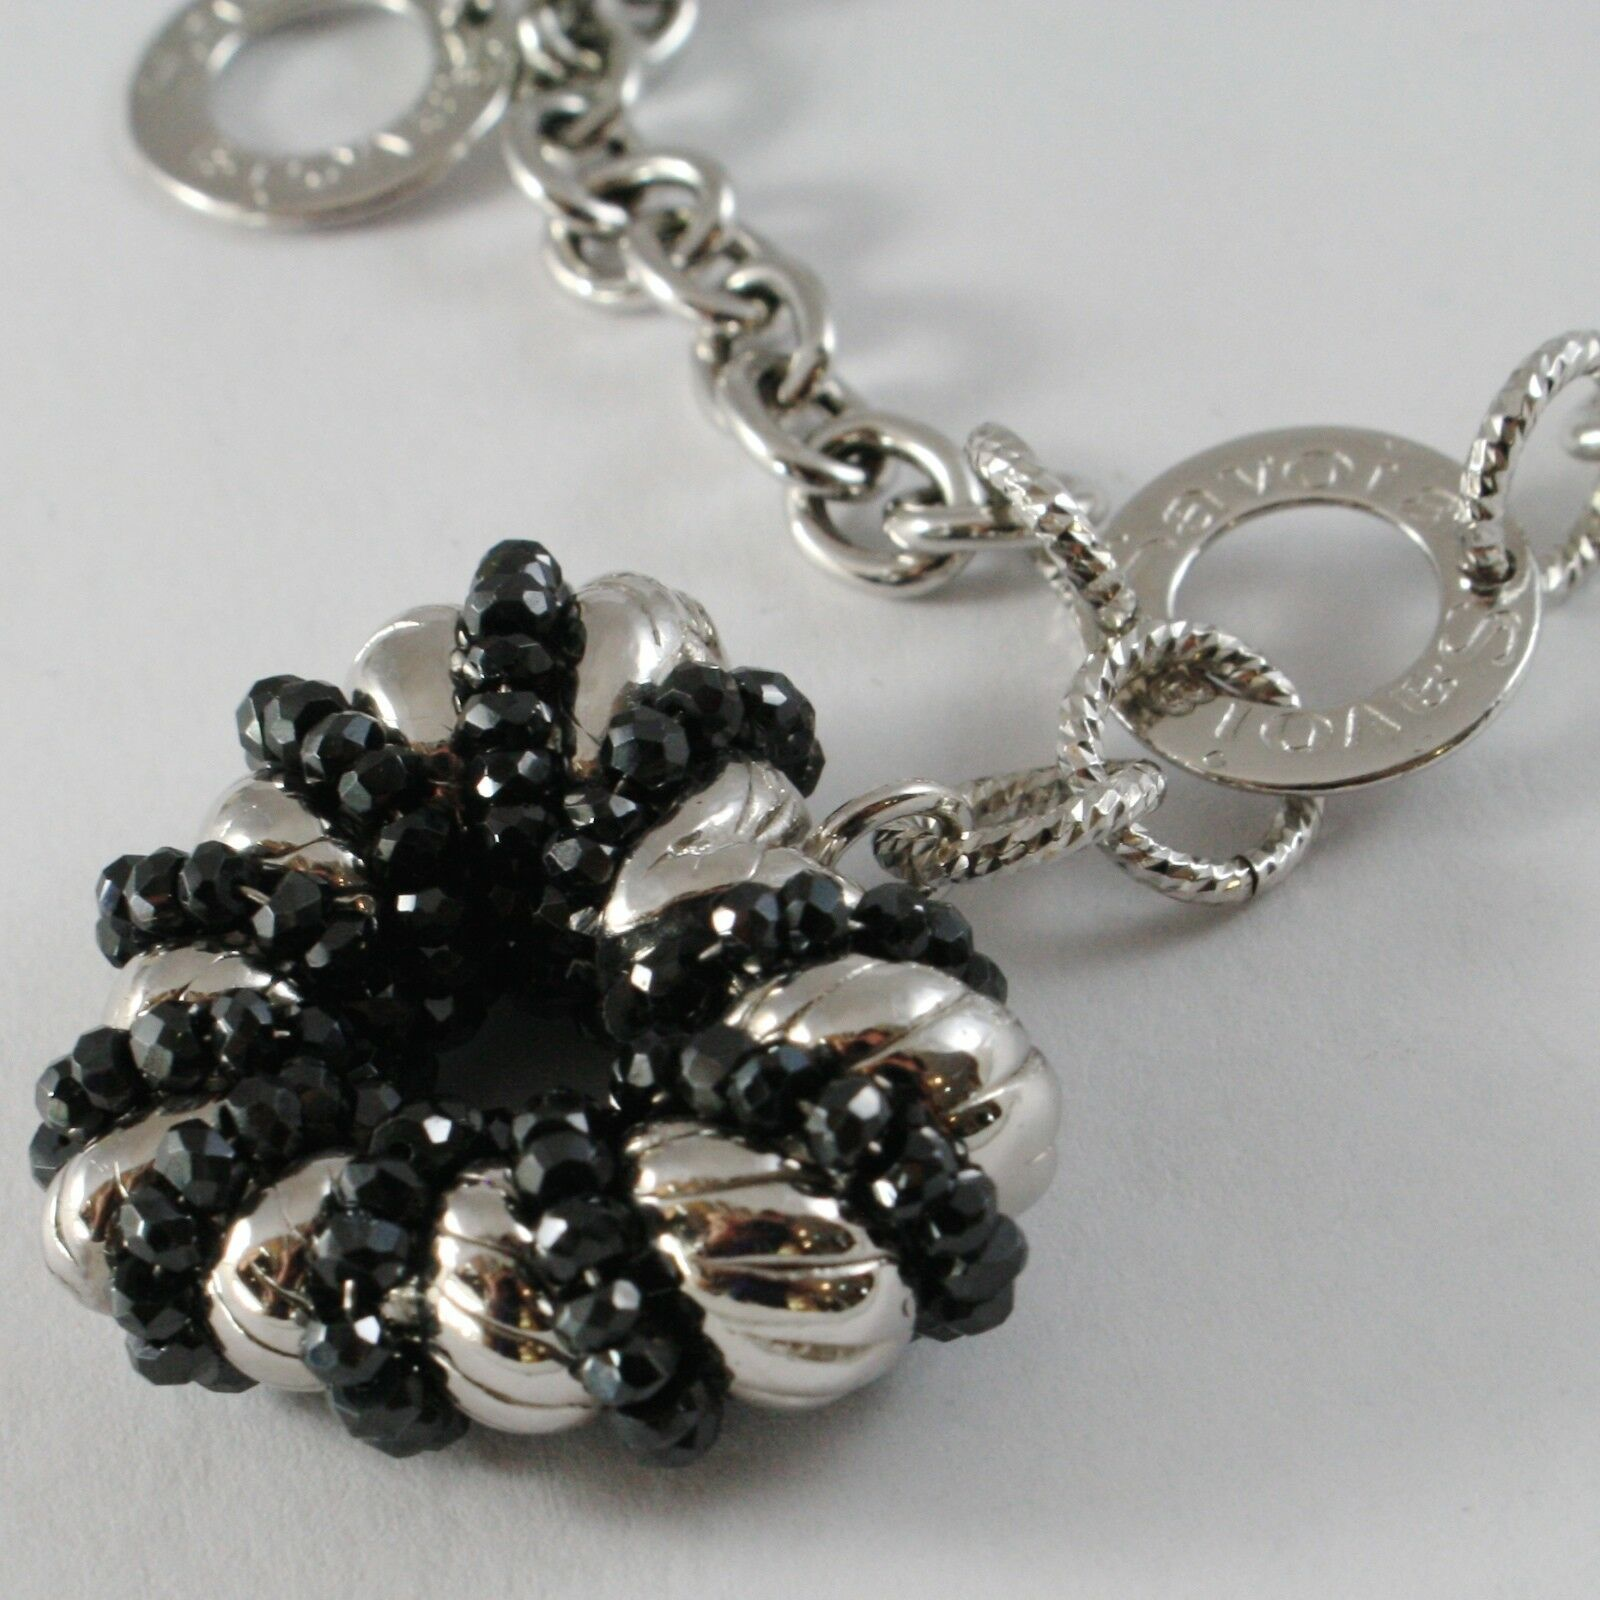 Bracelet Silver 925, Rolo ' with Heart Pendant Milled and Spinel Black, Circles